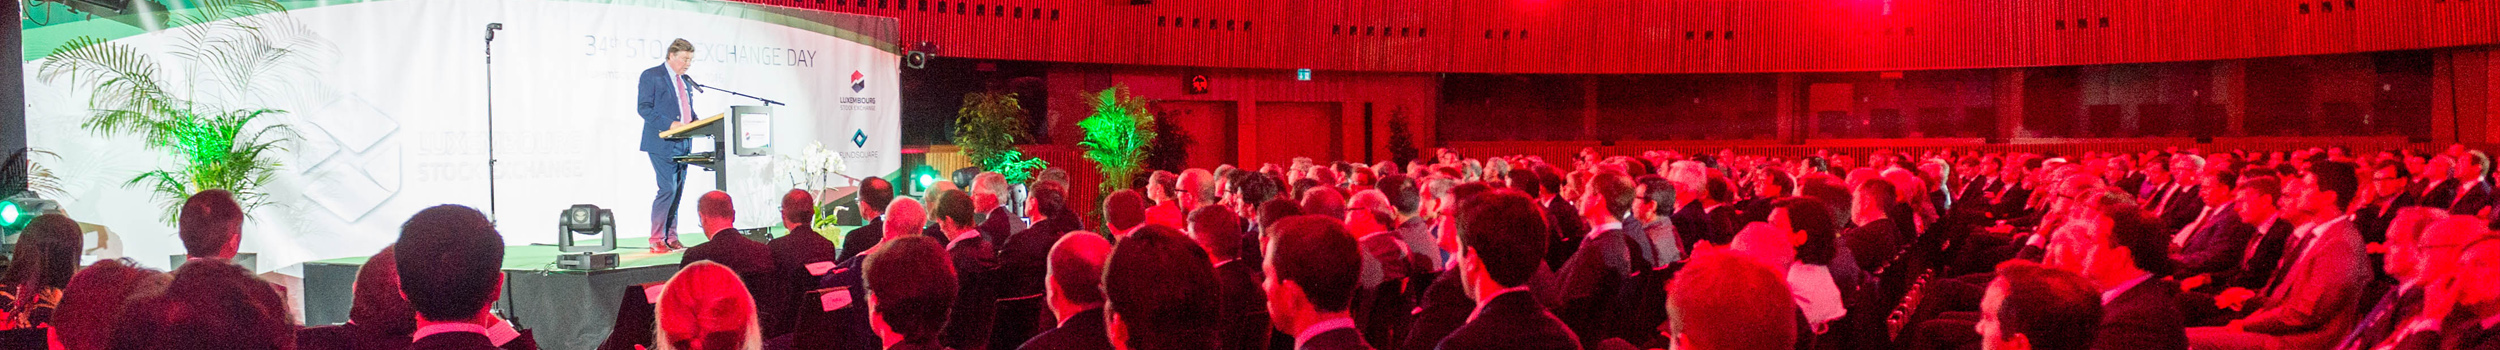 conference_bourse